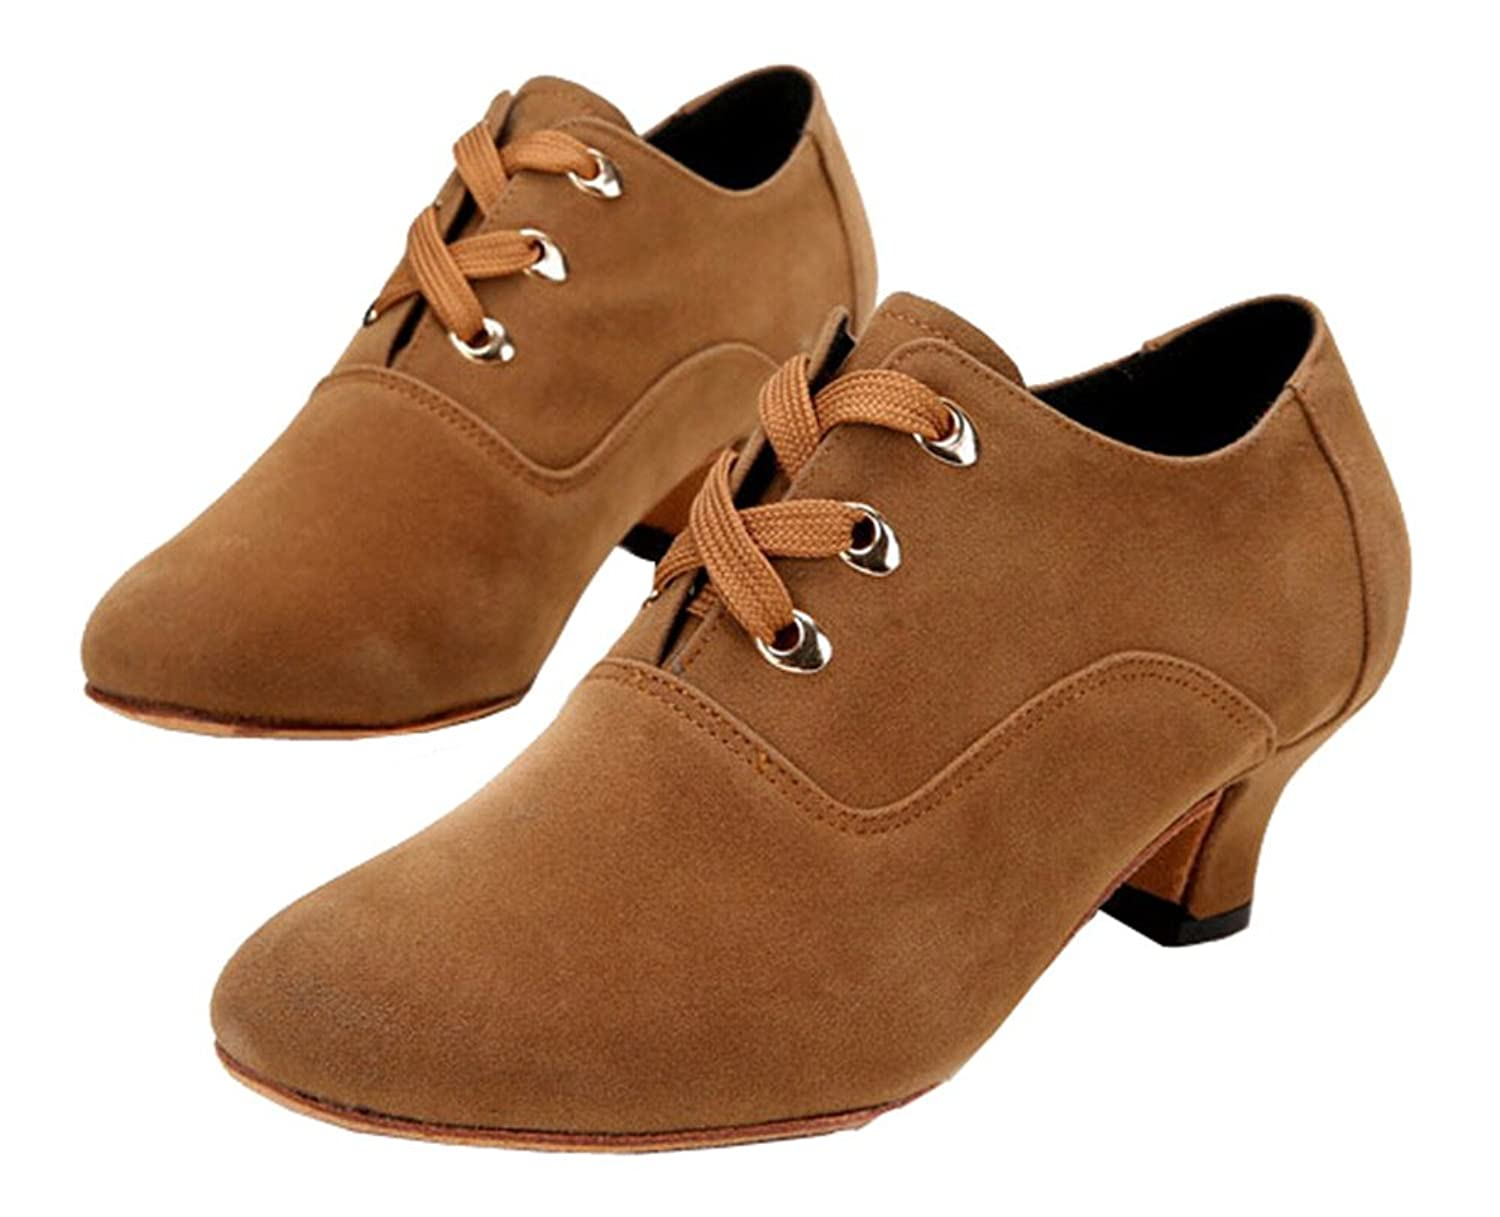 Vintage Dance Shoes- Where to Buy Them Womens Modern Practice Social Dance Shoes Ankle Jazz Boots Lace-up $33.50 AT vintagedancer.com